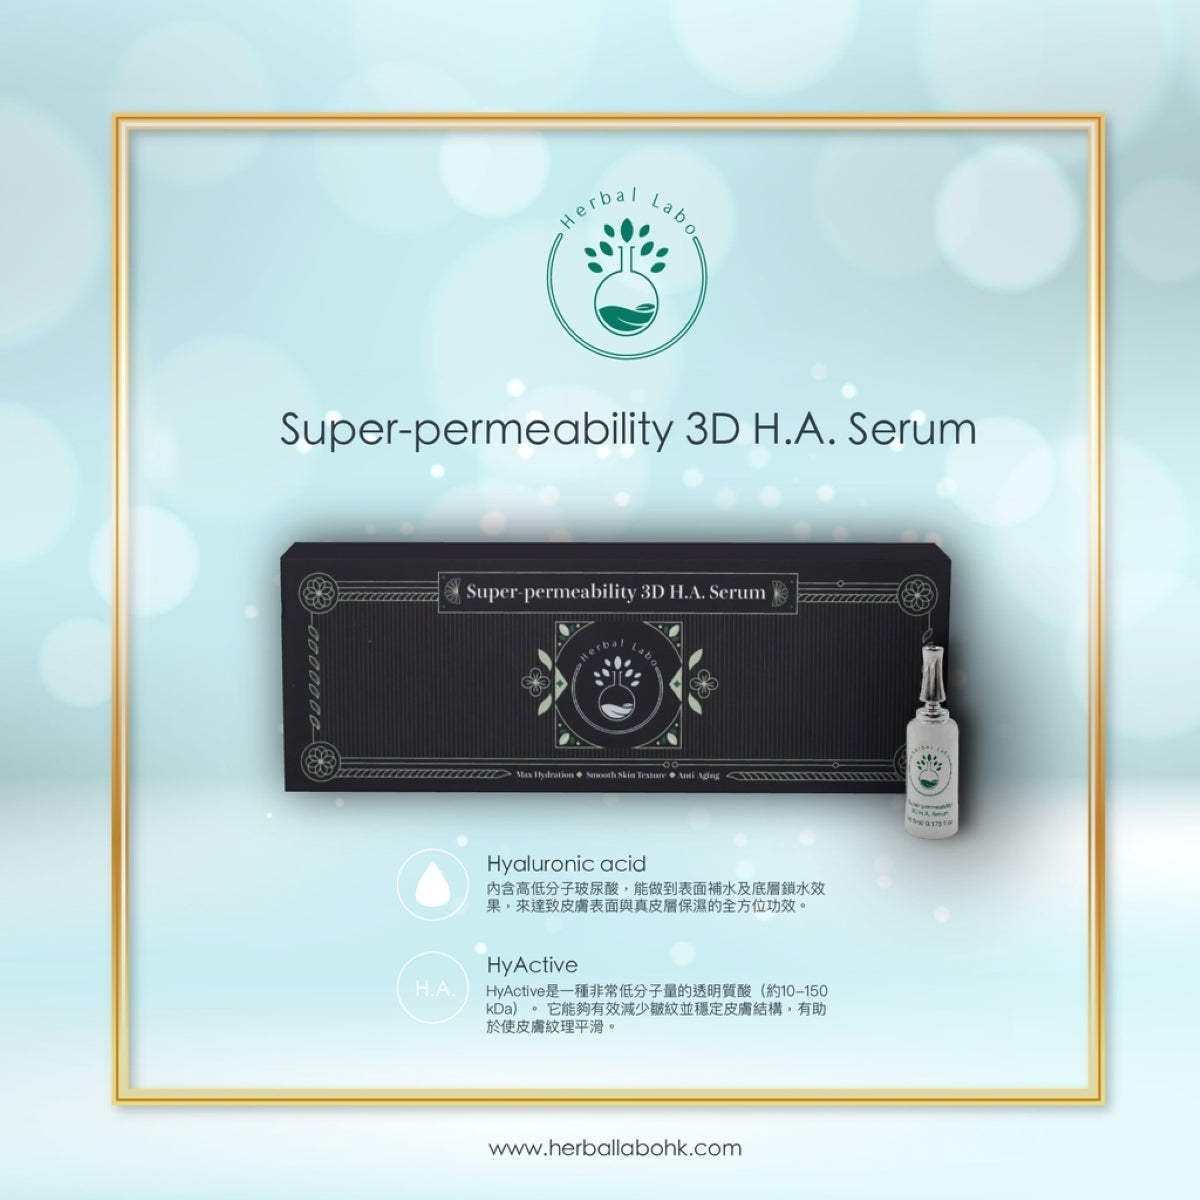 百保BuyBo Herbal Labo 超滲透3D玻尿酸精華 Herbal Labo Super-Permeability 3D H.A. Serum